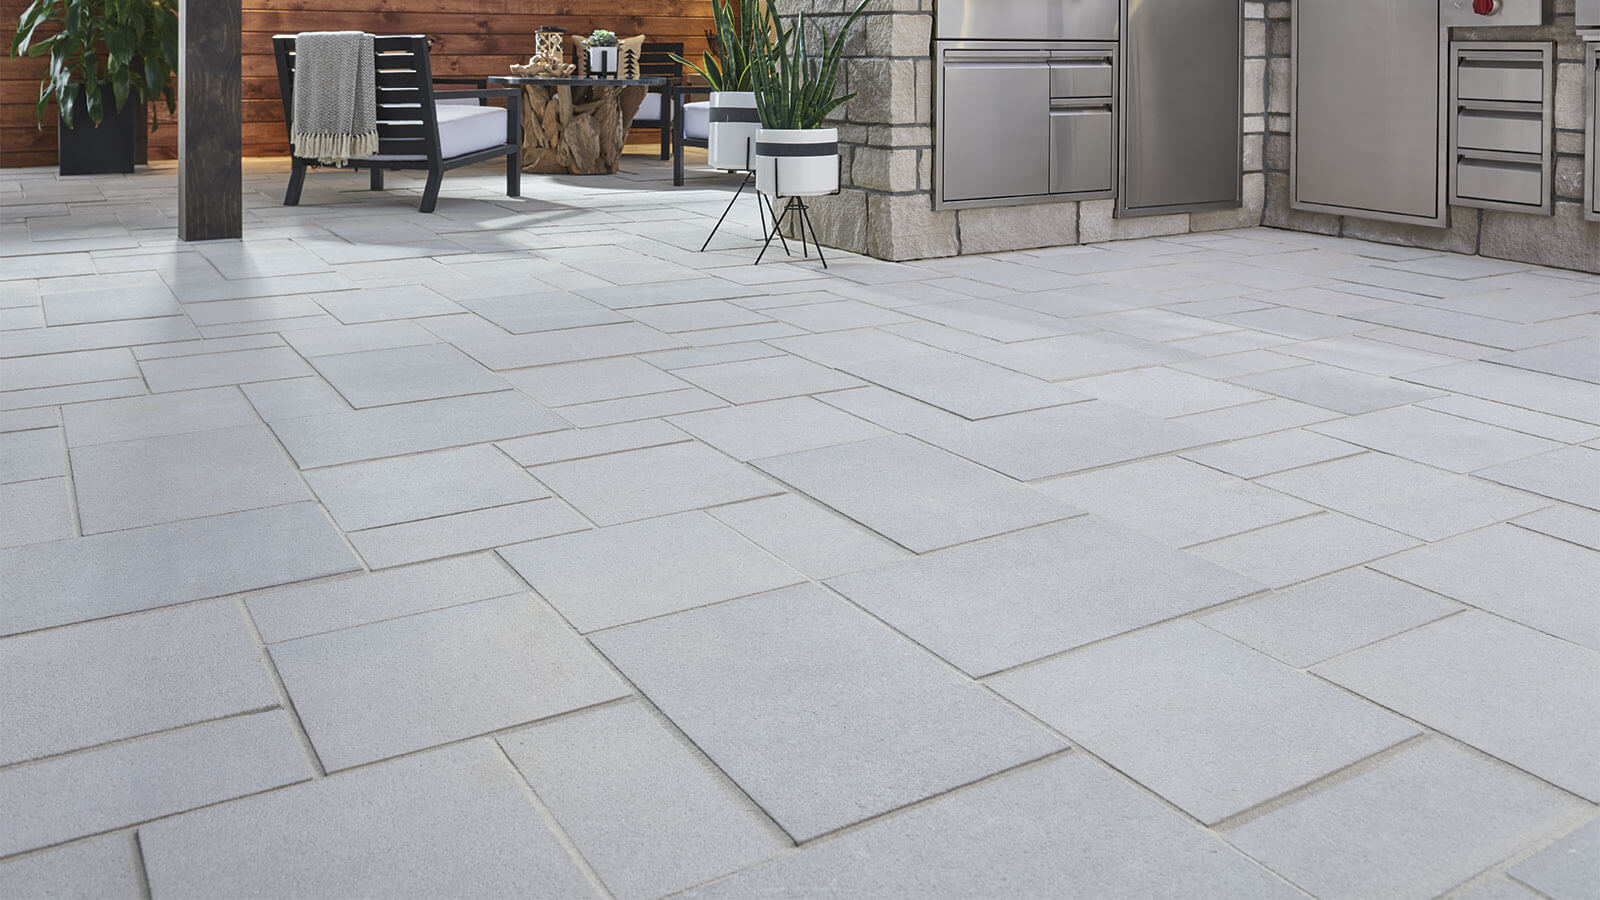 Pattern Pavers - Polycor Hardscapes